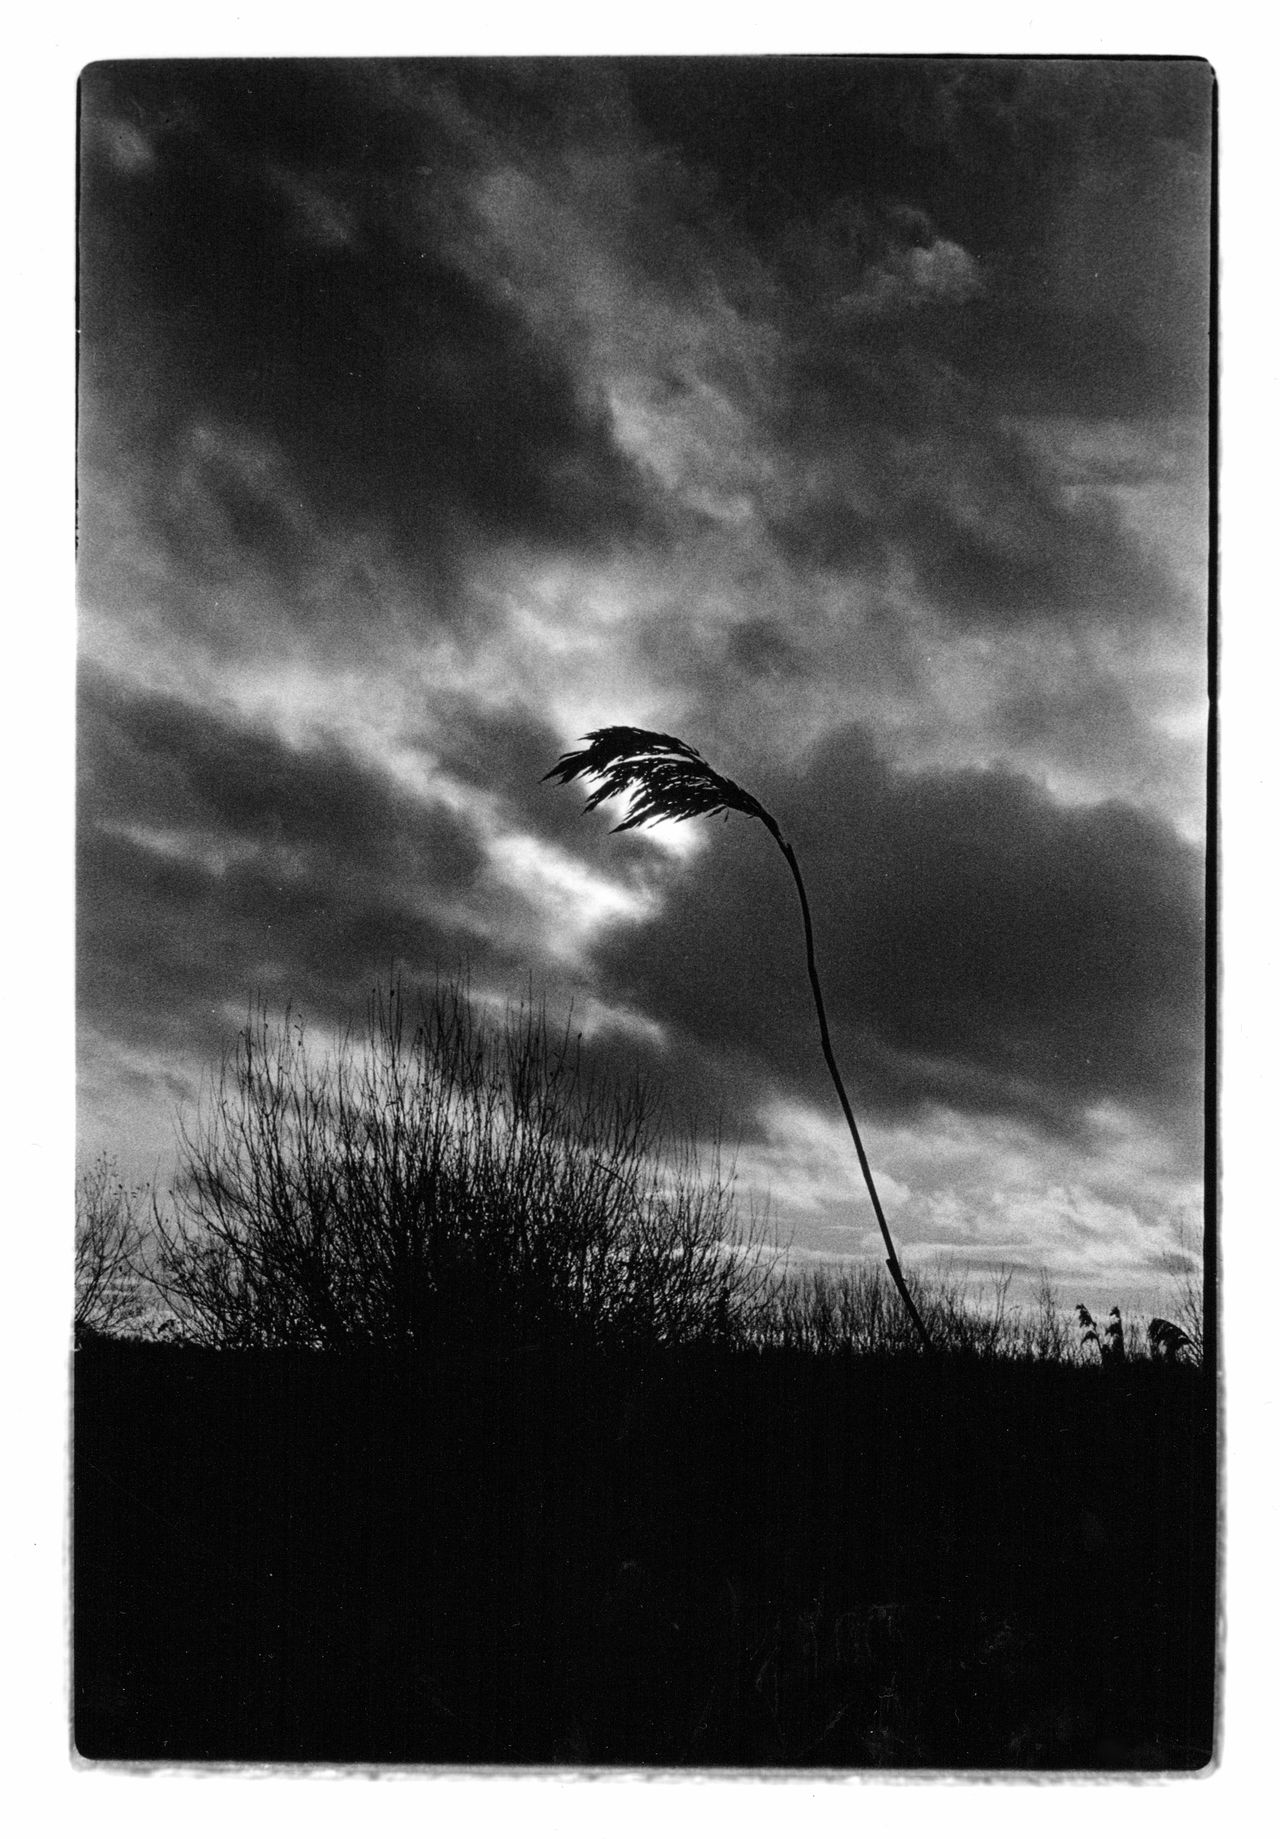 Analogue Beauty In Nature Blackandwhite Bristol Folk House Darkroom Chemistry Cloud - Sky Darkroom Film Photography Growth Konica EEmatic Deluxe Monochrome Nature No People Outdoors Plant Retro Silhouette Sky Somerset Levels Uk